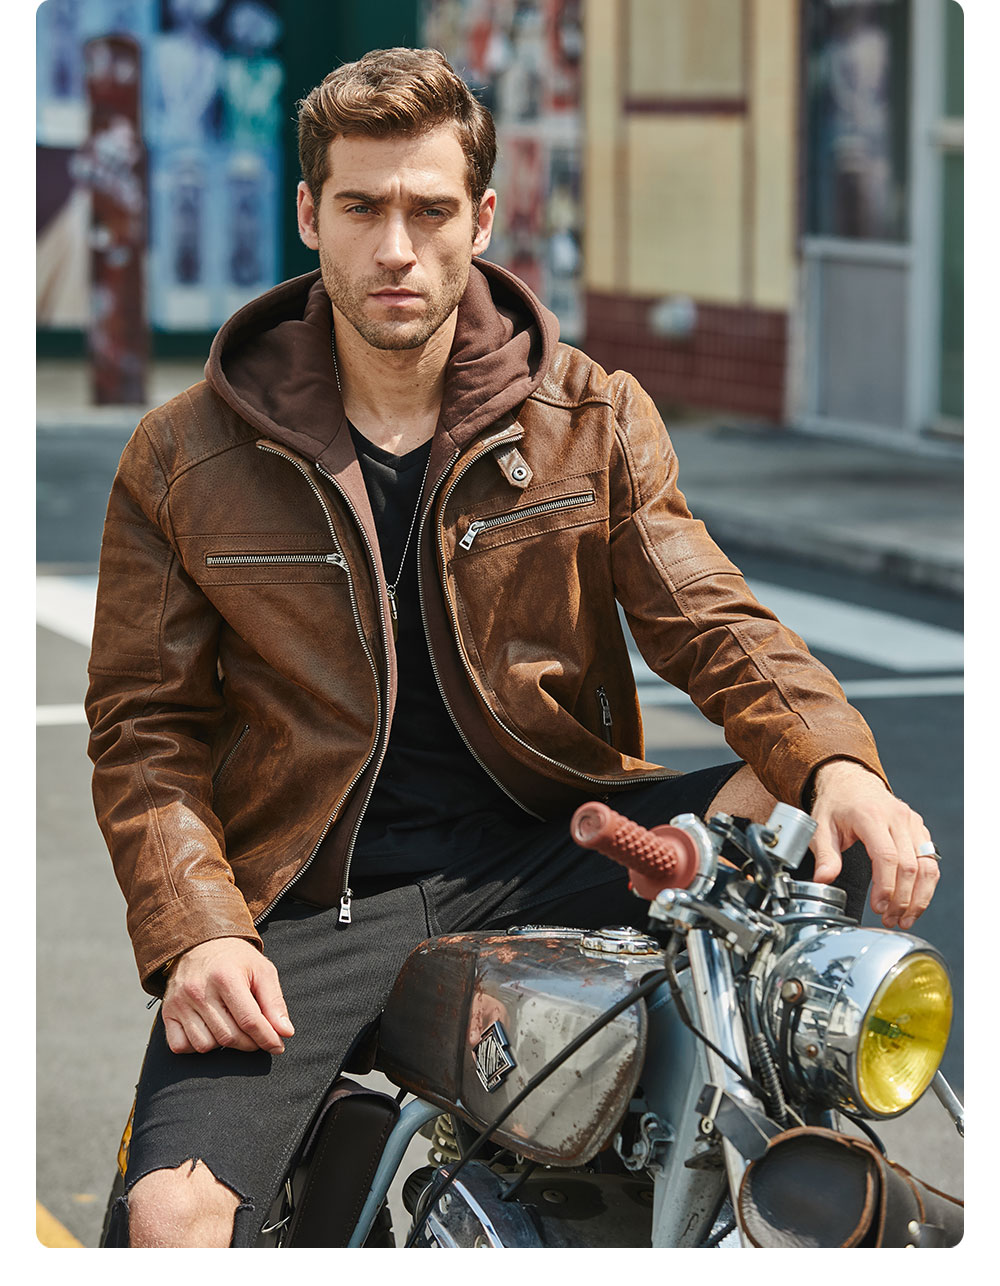 H6f512d7d5d514895b14480cc3bd8678a6 New Men's Leather Jacket, Brown Jacket Made Of Genuine Leather With A Removable Hood, Warm Leather Jacket For Men For The Winter